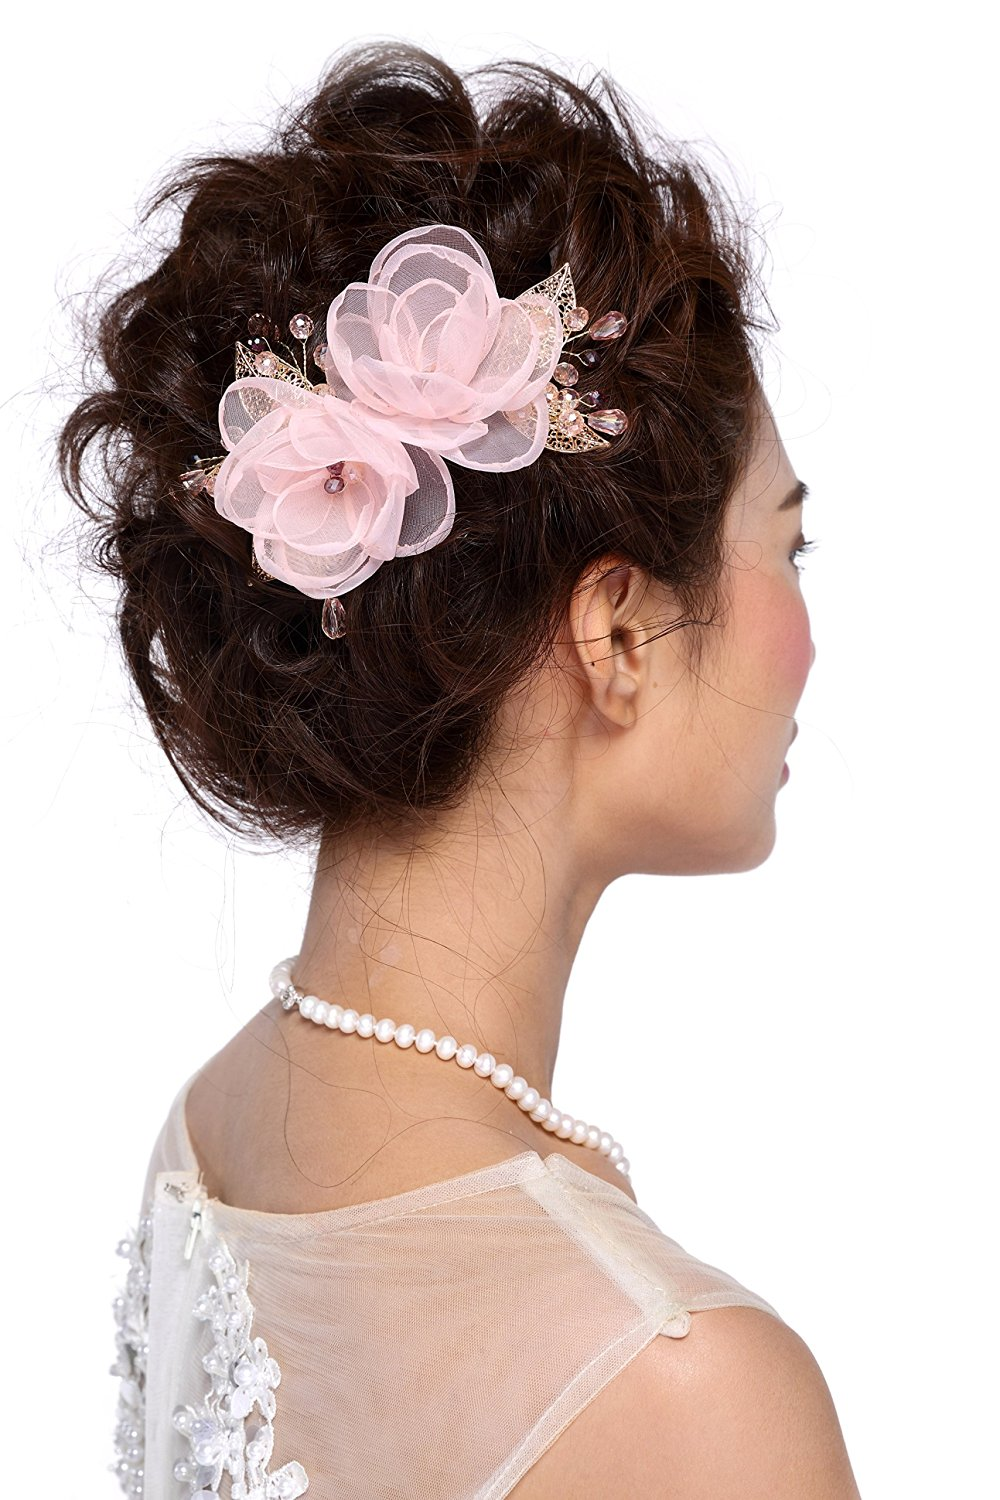 HailieStudio Women's Handmade Wedding Swarovski Crystal Pink Floral Bridal Headpiece